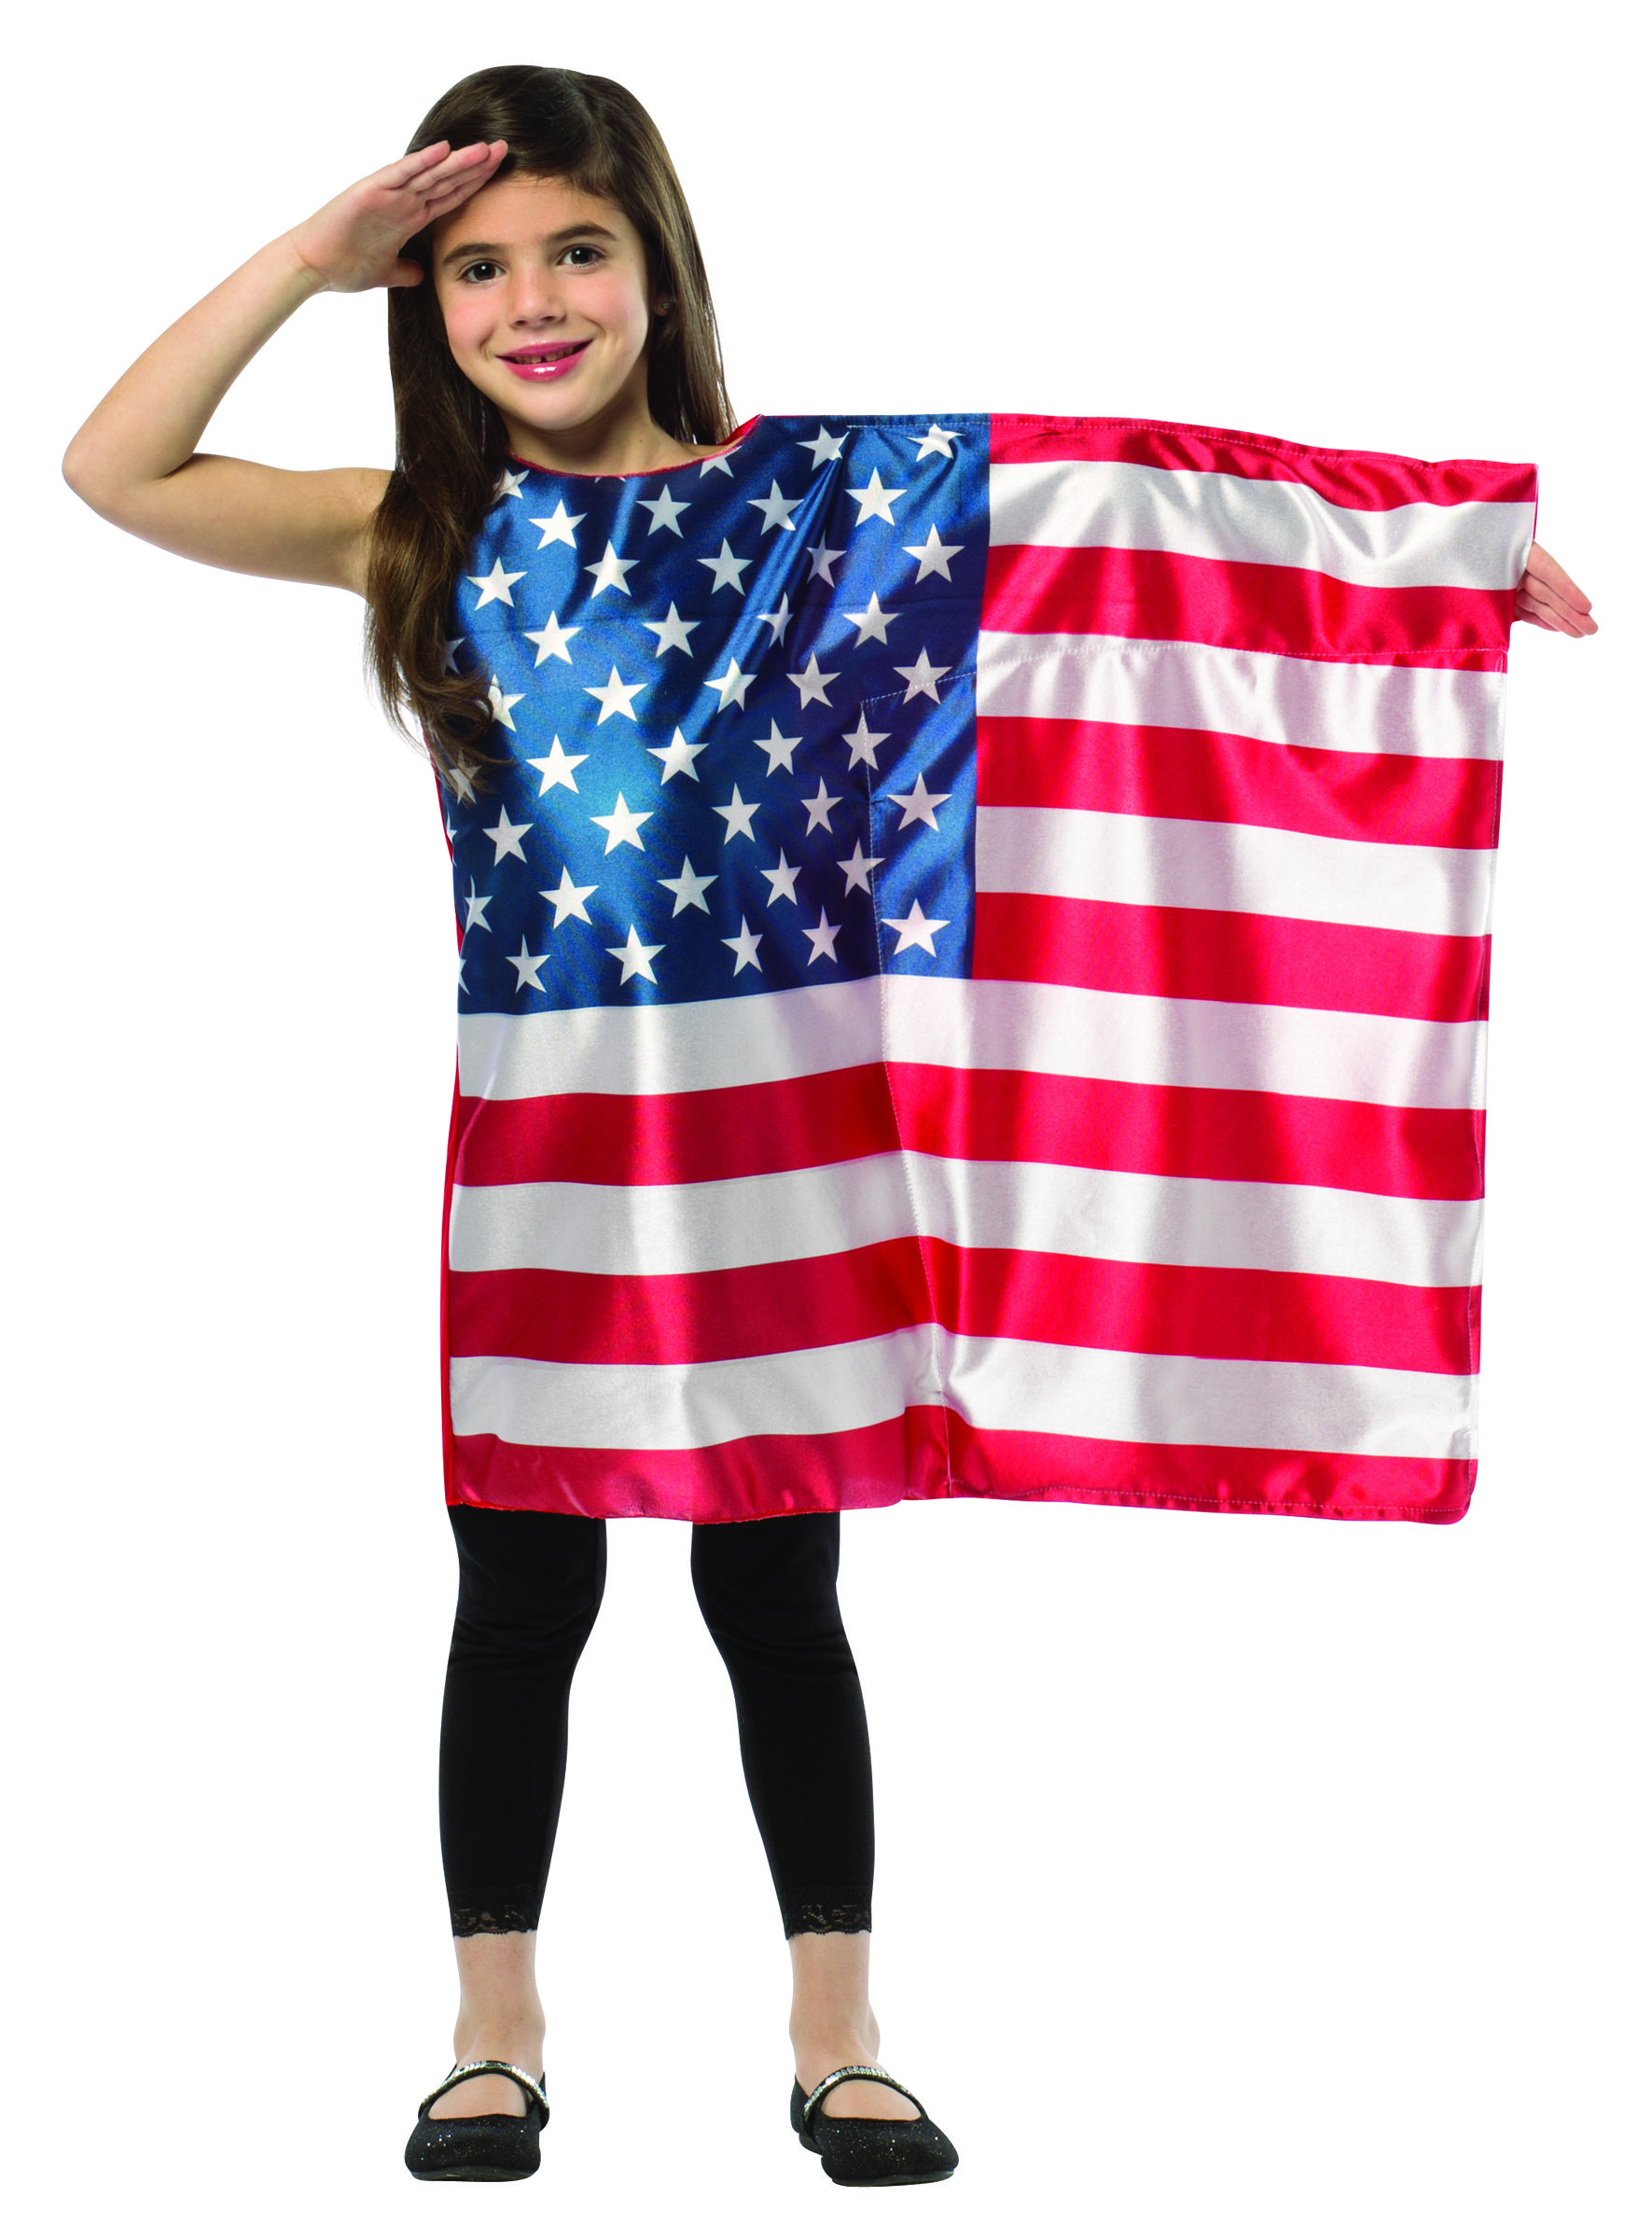 1942 710 Flag Dress Usa Show Off Your Patriotic Side With The Usa Flag Dress Parade Favorite Holiday Or American Flag Dress Flag Dress Patriotic Costumes